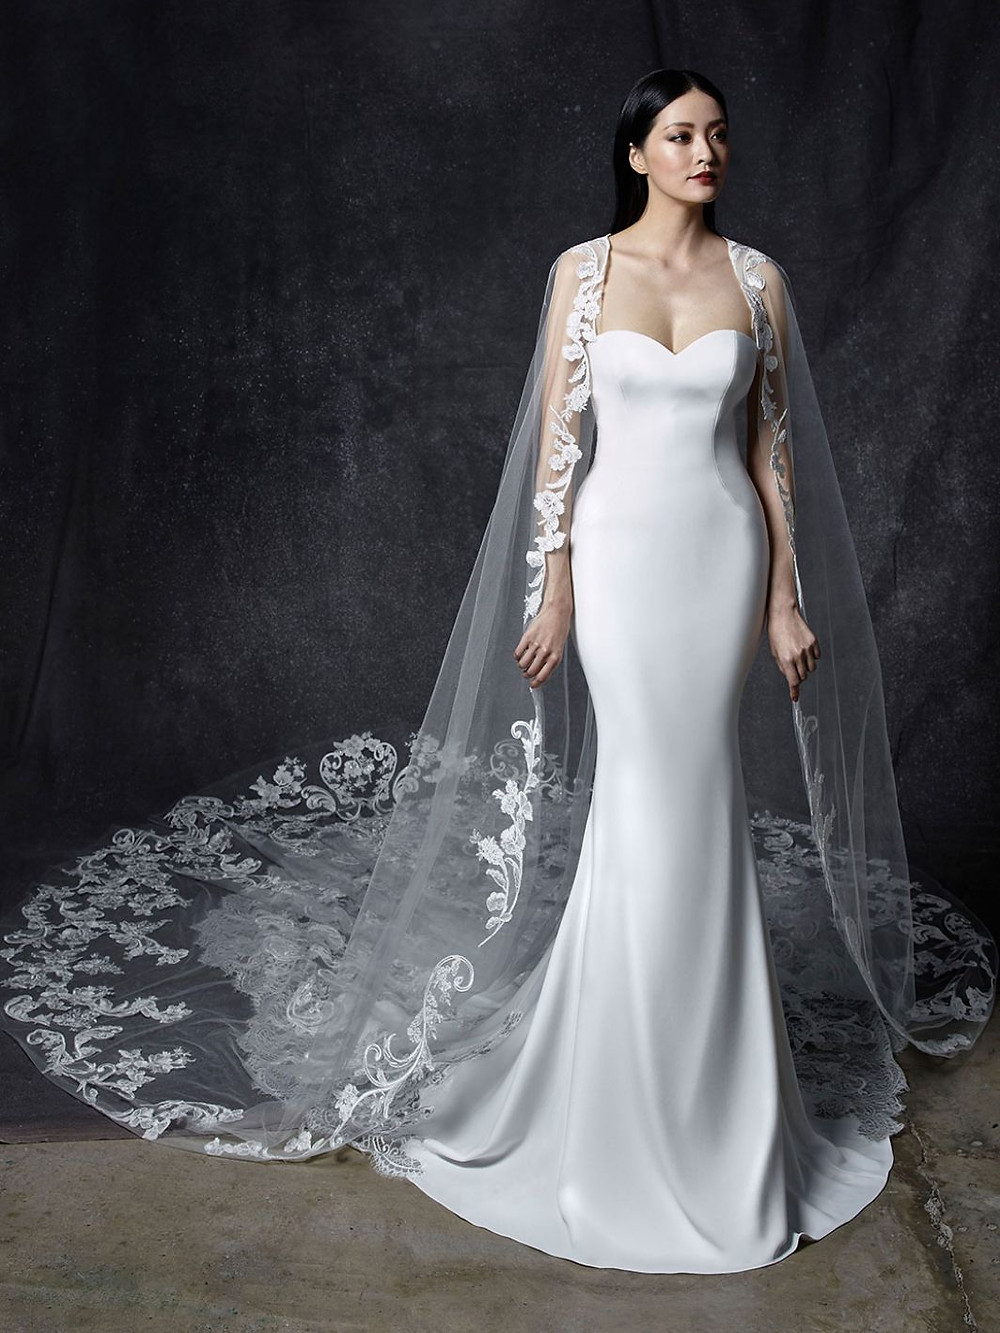 An Enzoani silk mermaid wedding dress with a sweetheart neckline and a tulle cape